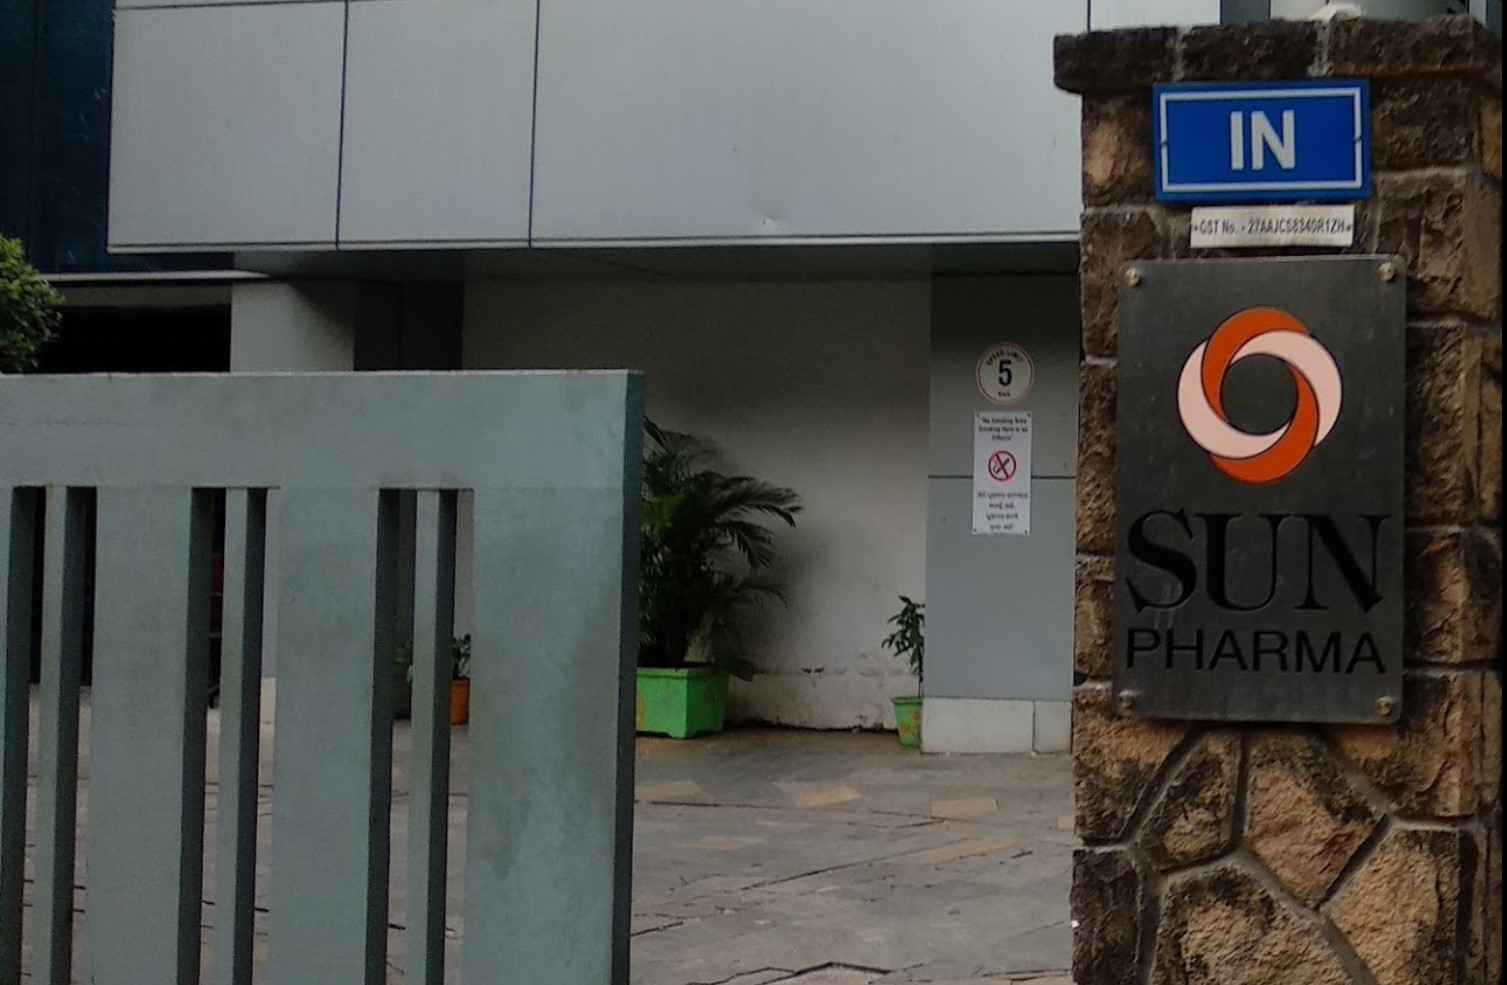 Sun Pharma launches dry-eye treatment in the US